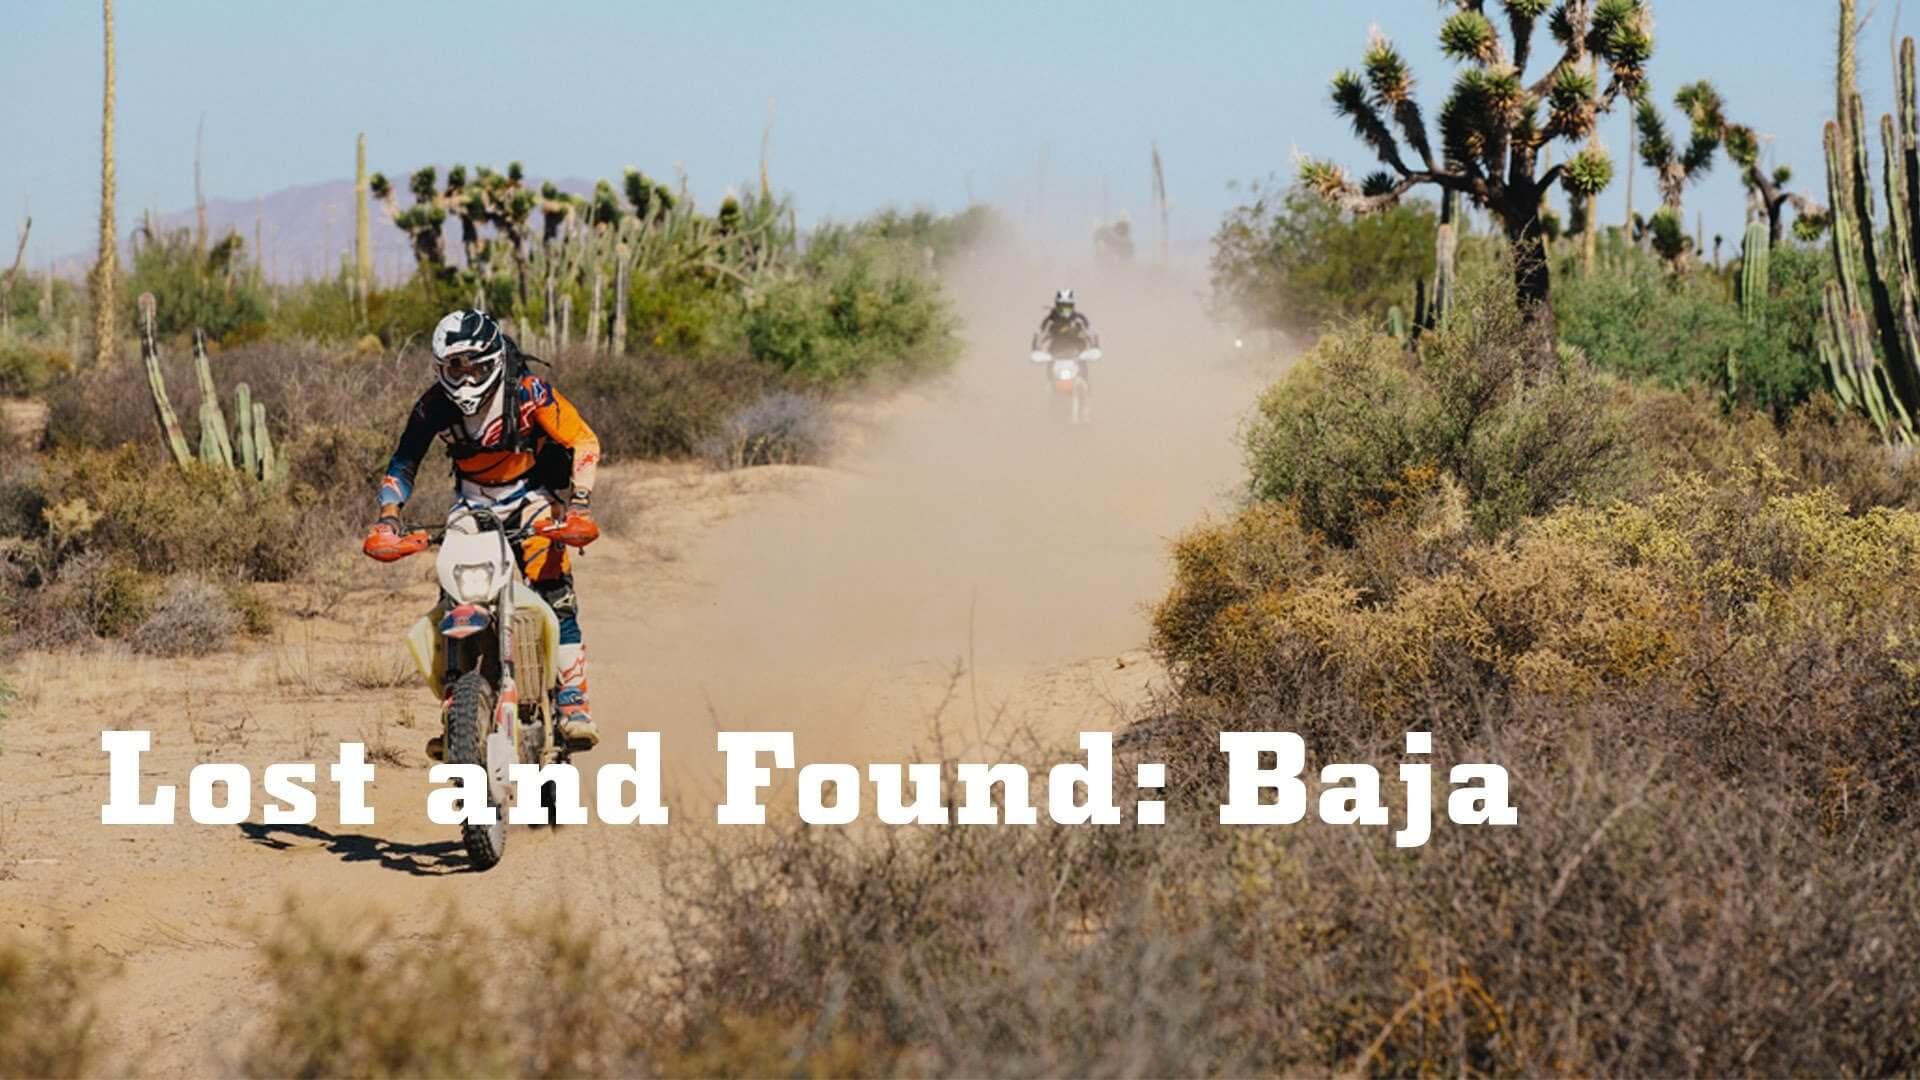 Lost and Found : Baja